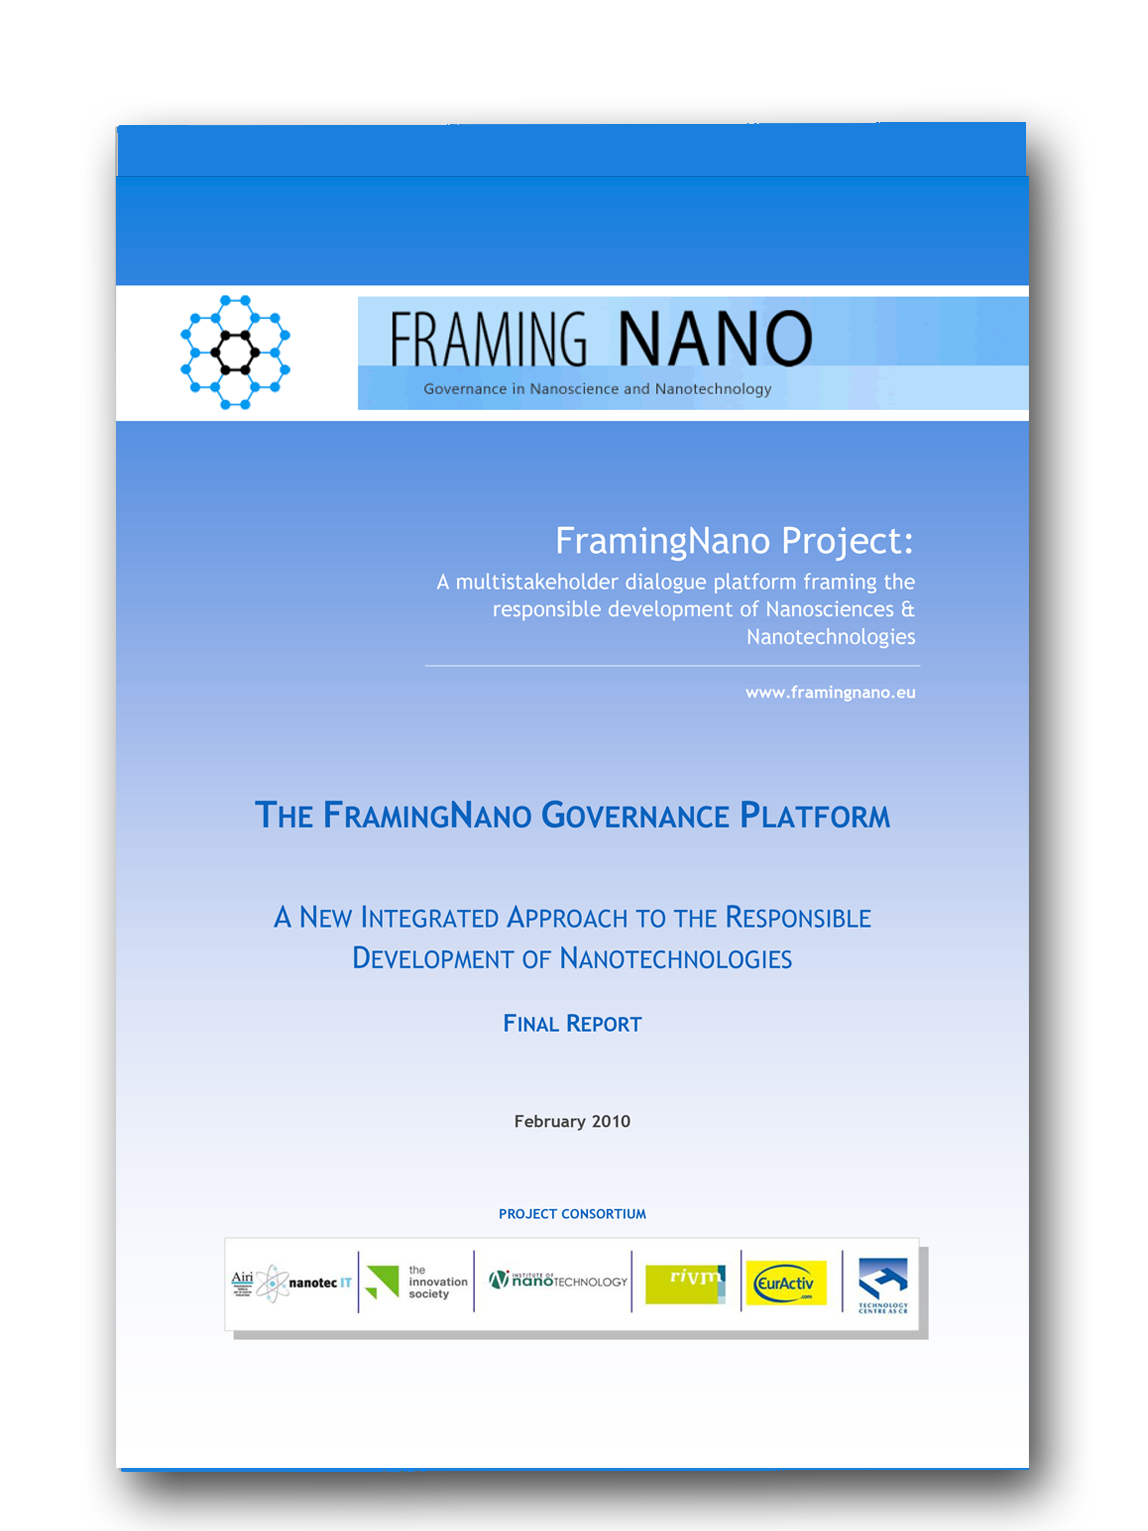 image: A new integrated approach to the responsible development of nanotechnologies, by Framing Nano